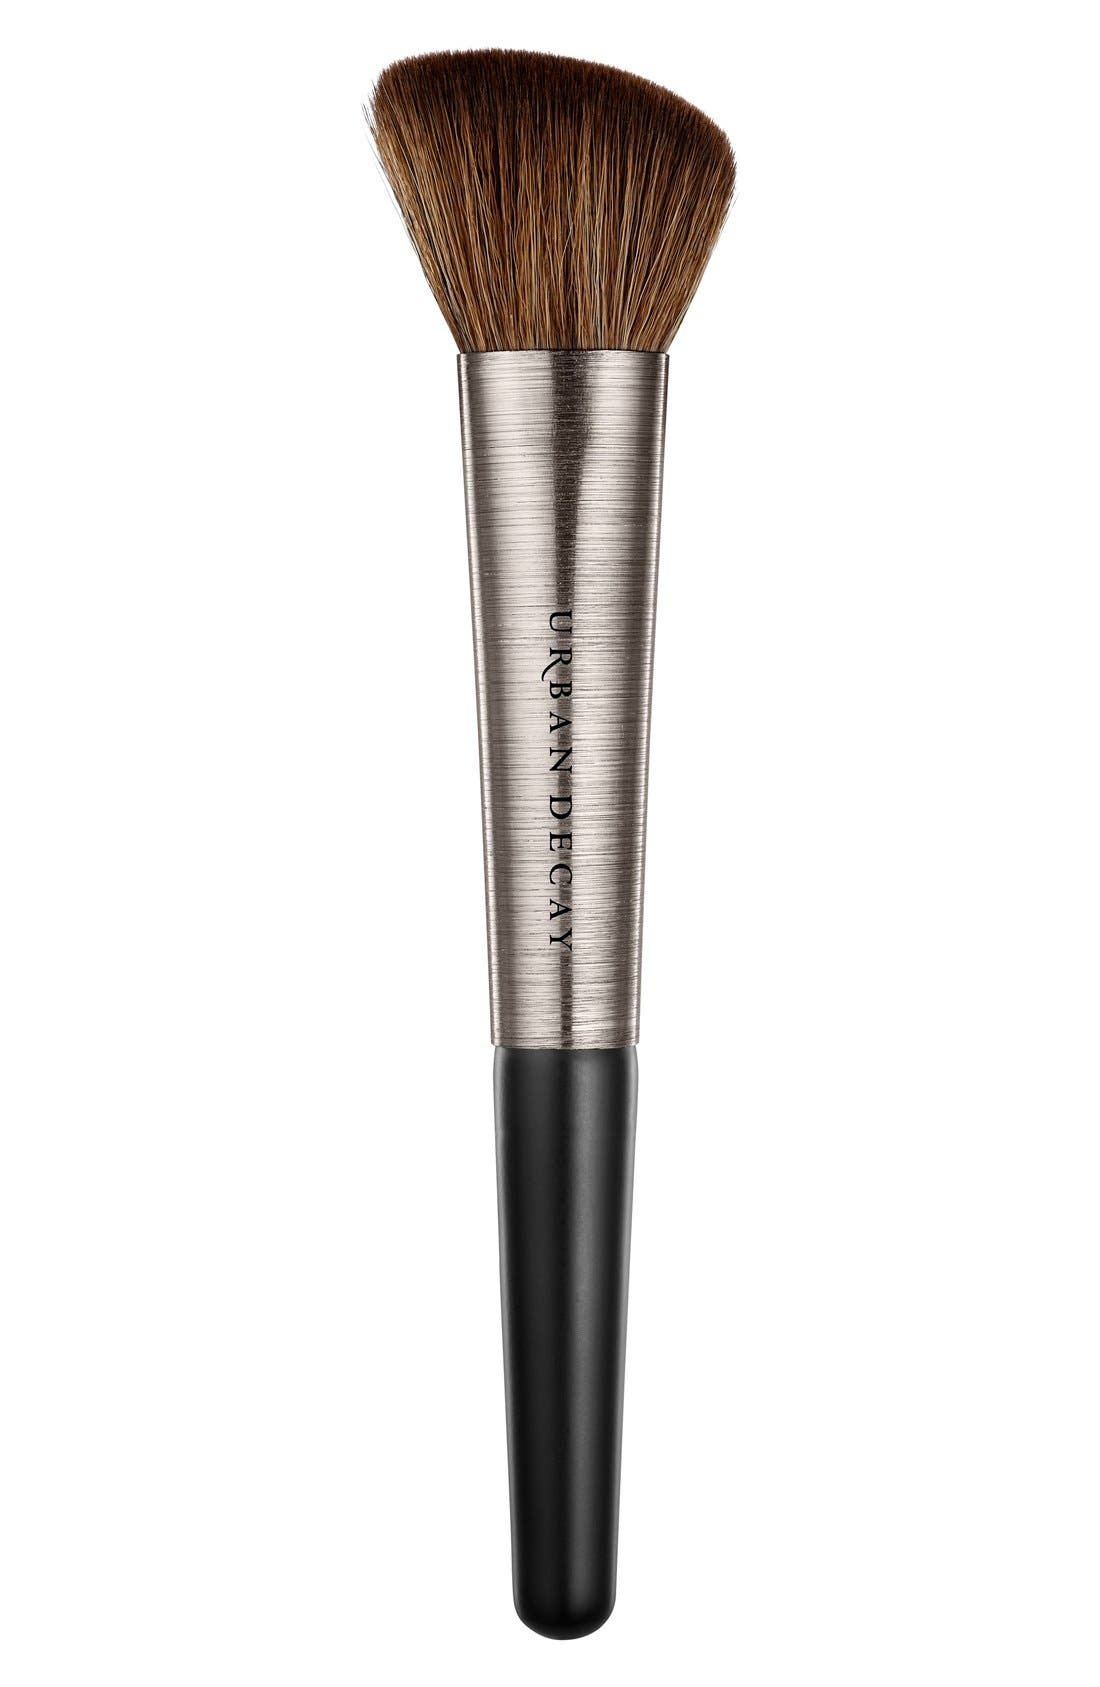 Urban Decay Pro Contour Definition Brush